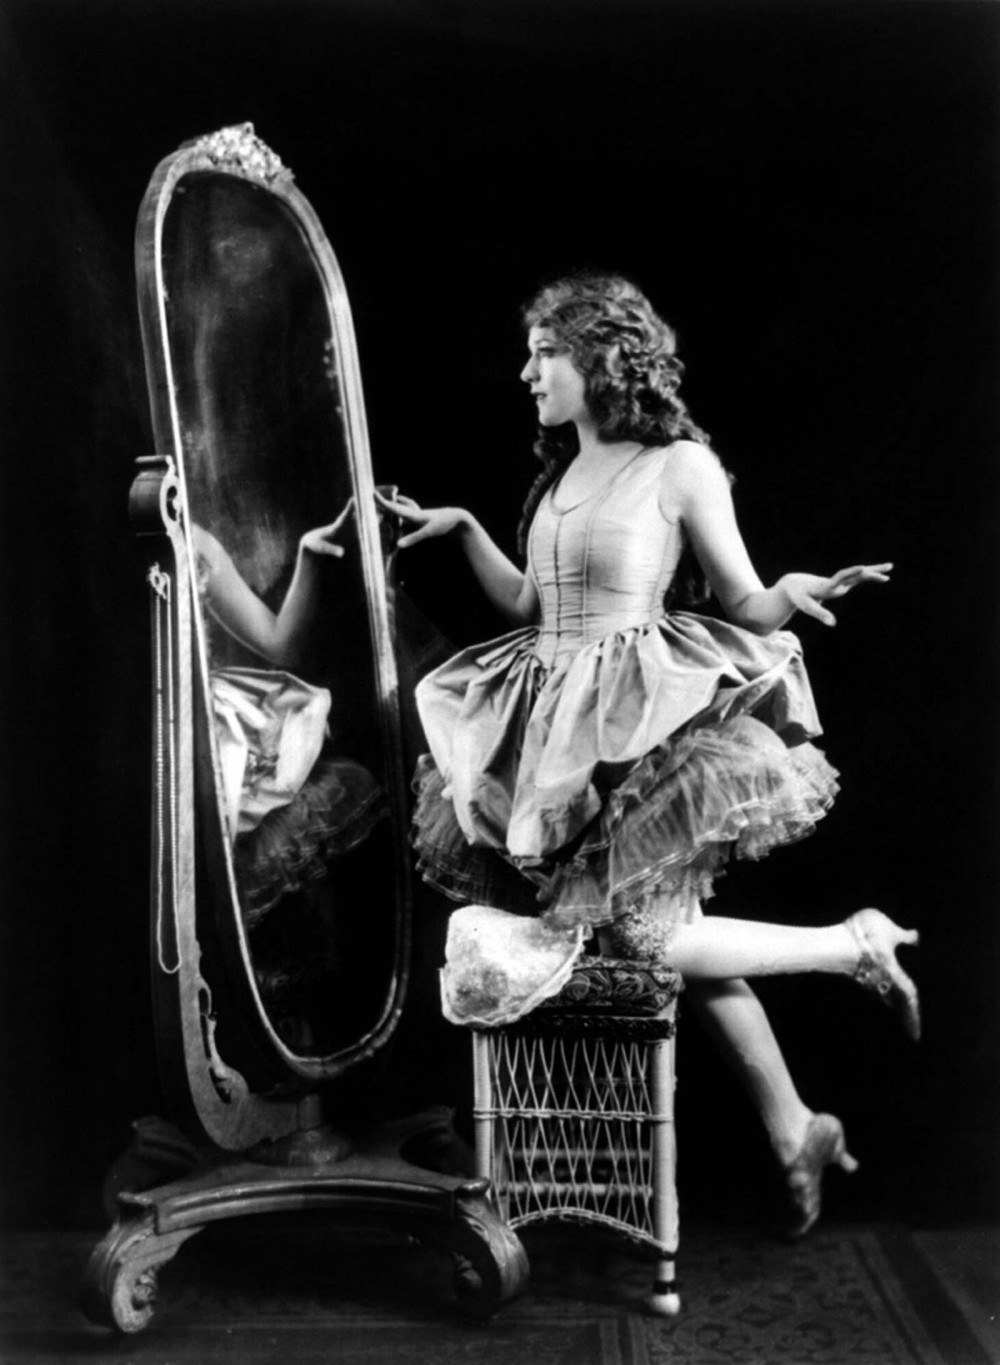 Mary Pickford's film personas led the glamorous and lavish lifestyle that female movie-goers of the 1920s desired so much. Mary Pickford, 1920. Library of Congress, http://www.loc.gov/pictures/item/2003666664.